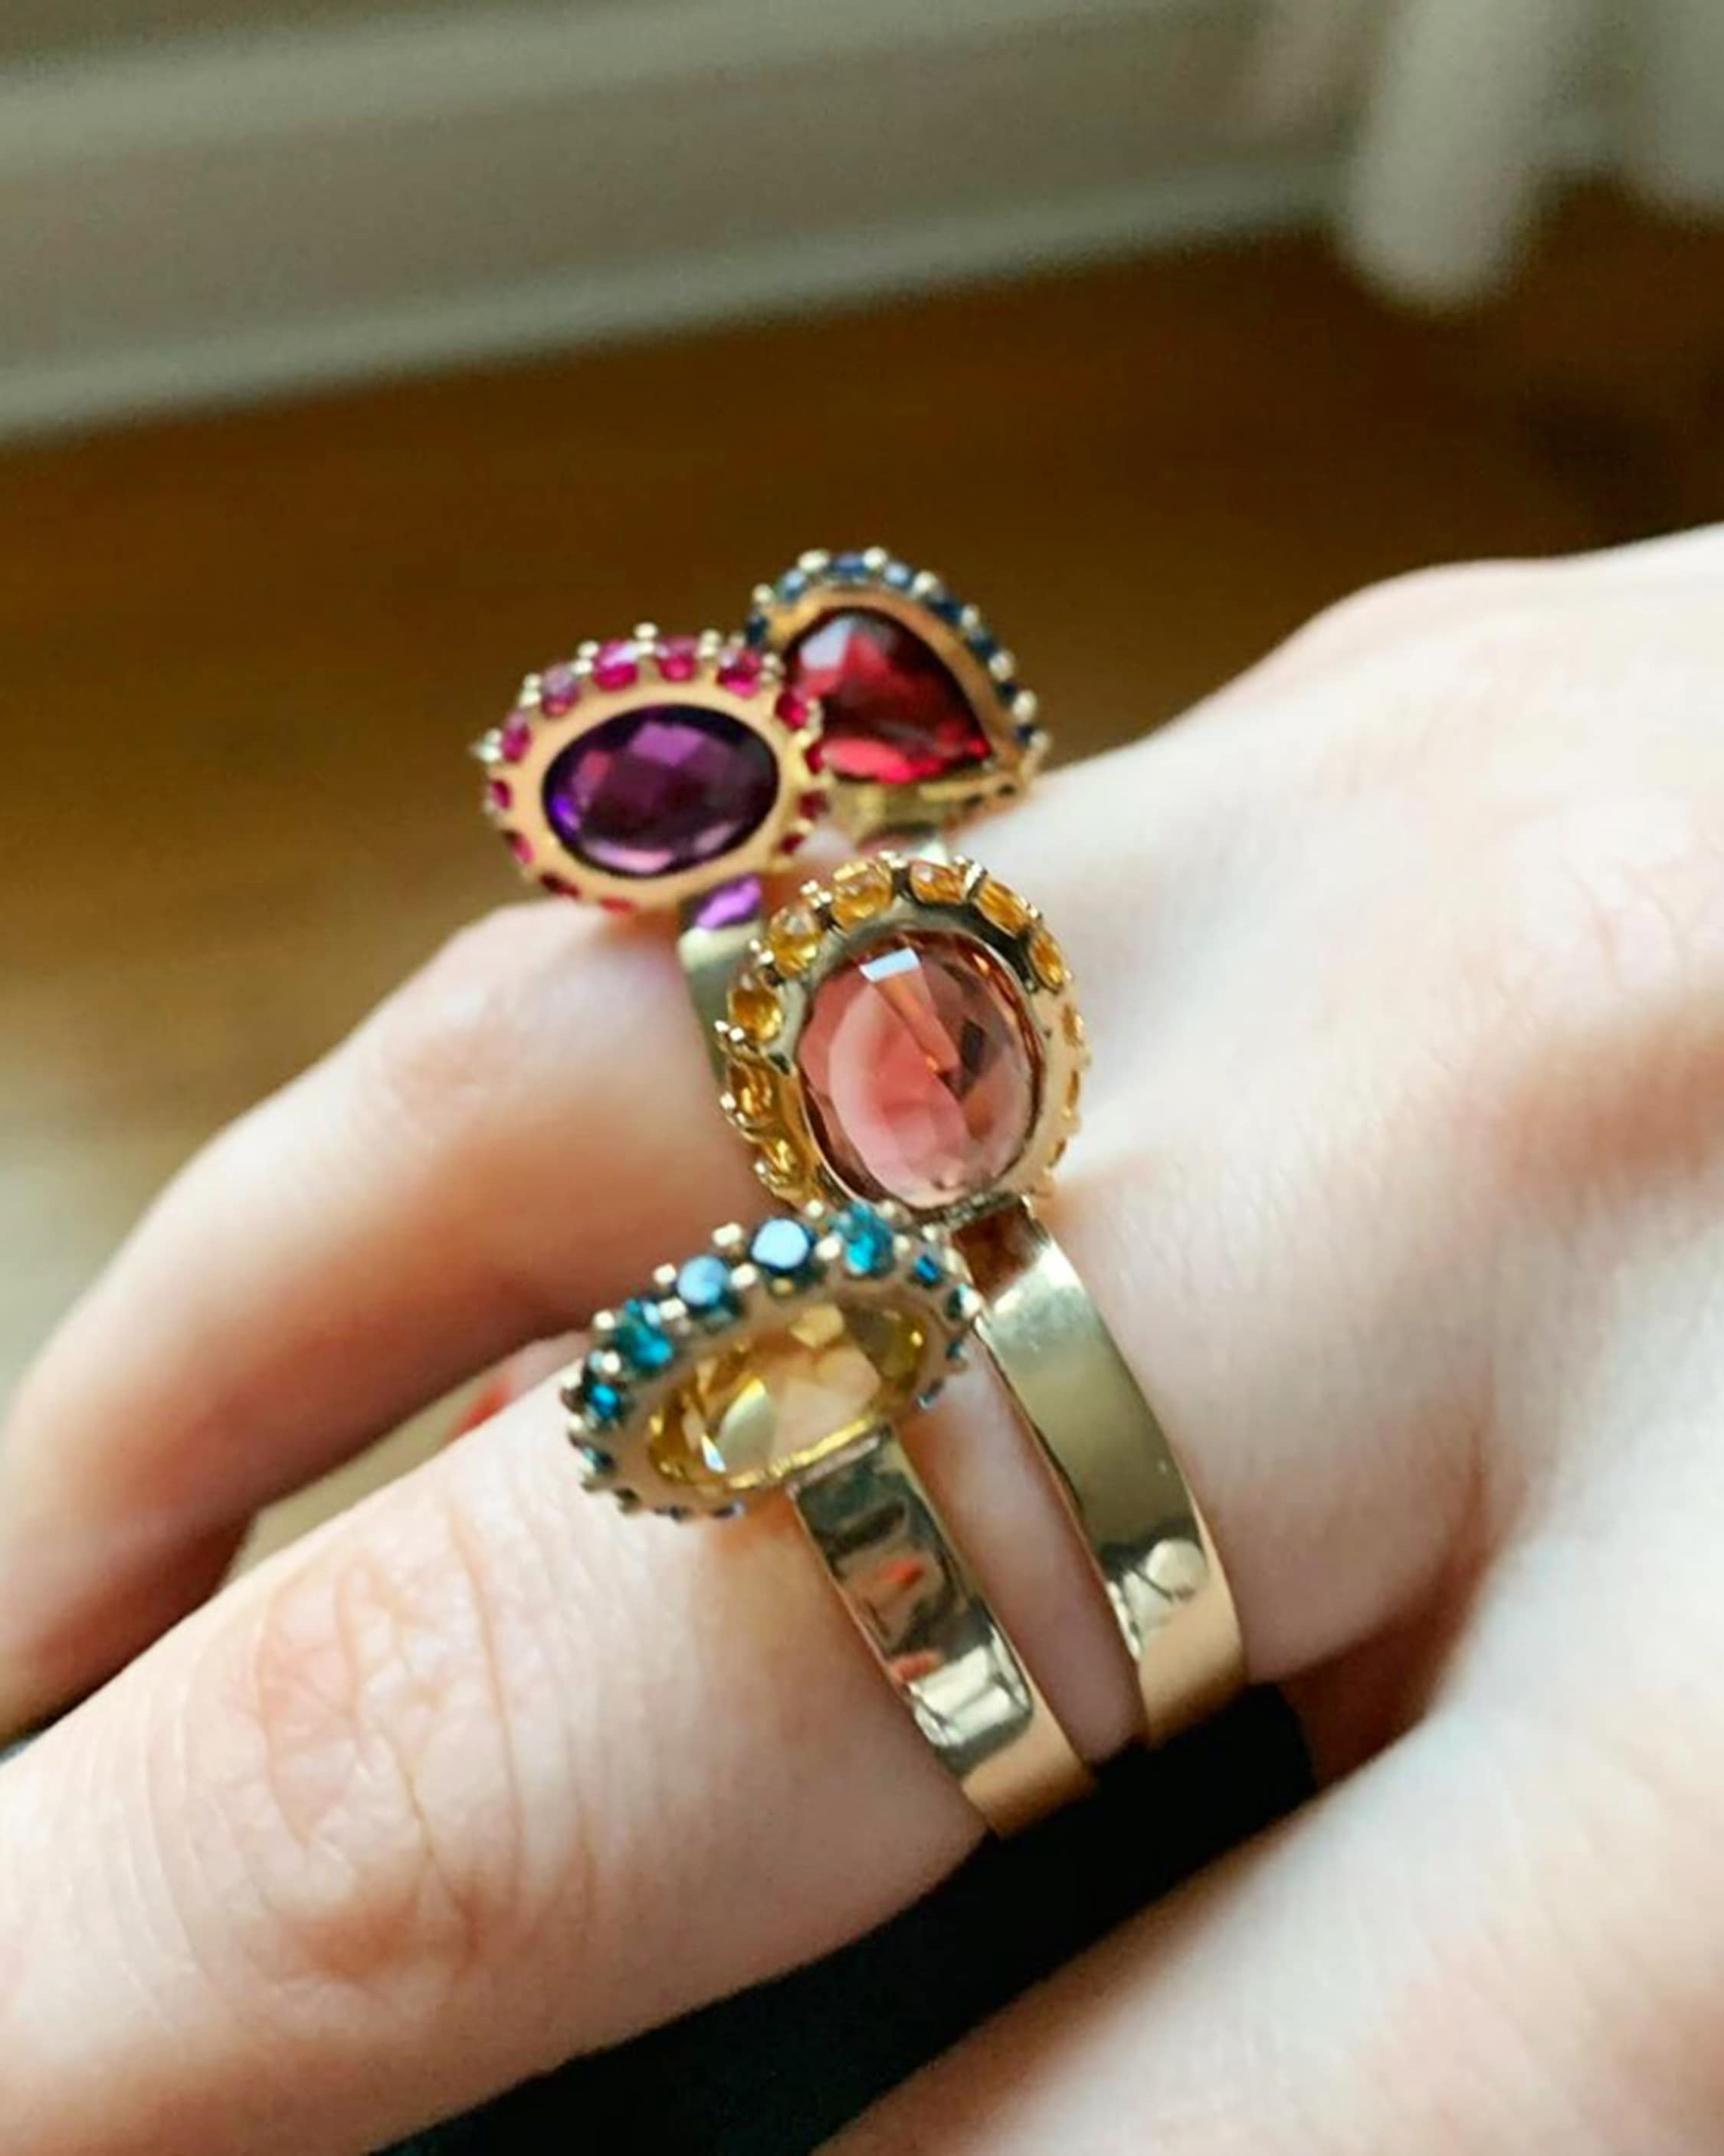 Leslie Paige Pink Tourmaline & Yellow Sapphire Perched Ring 2